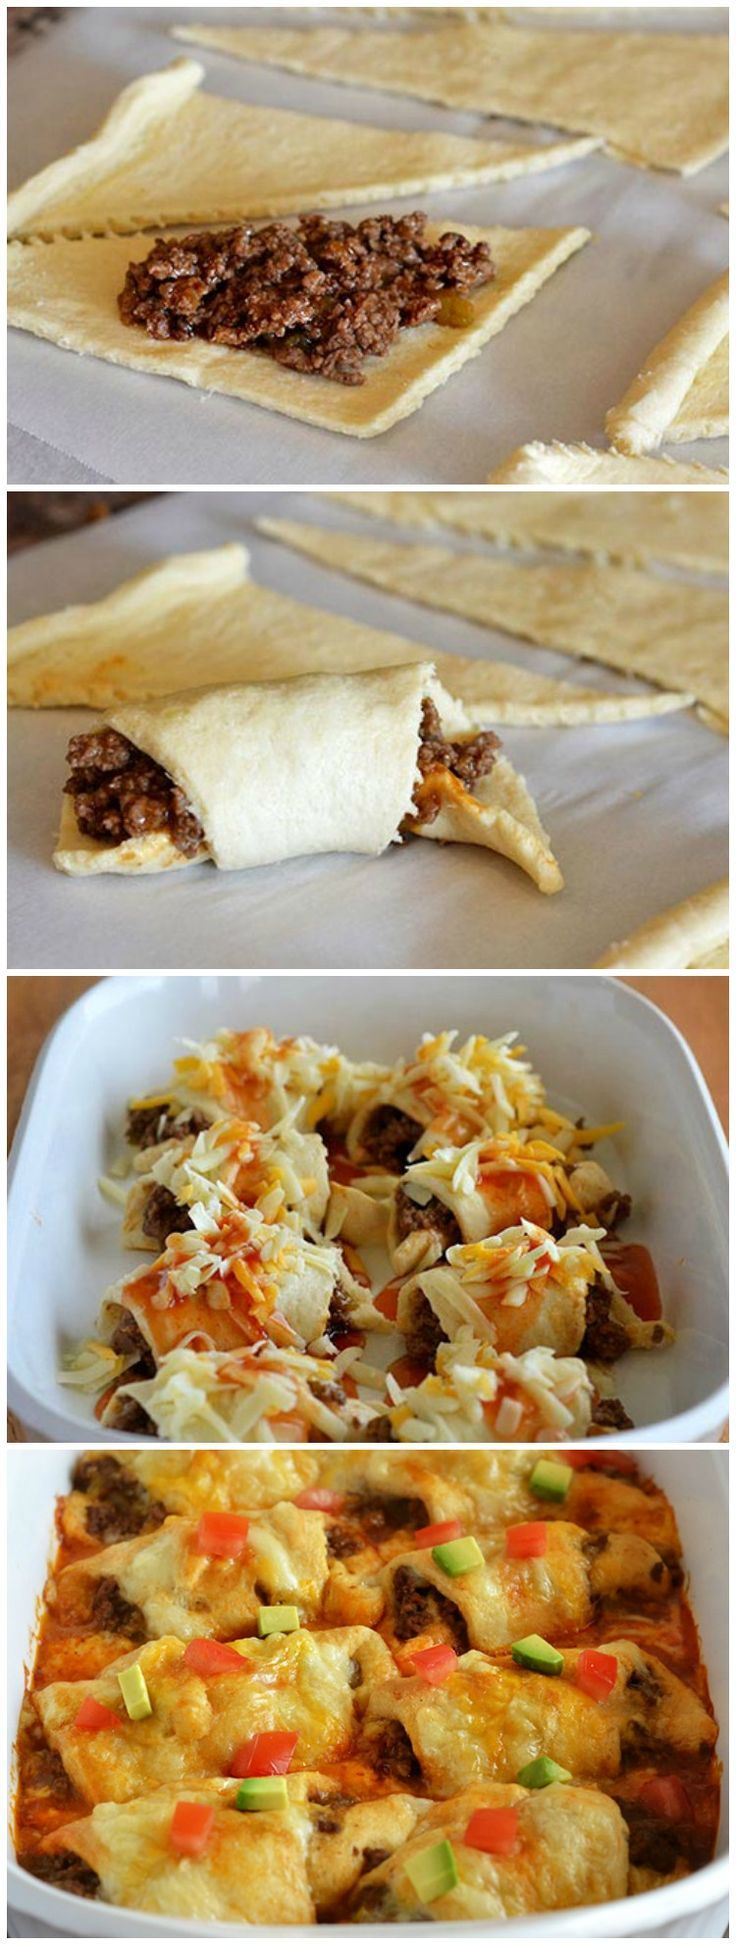 Top off these super quick beef enchilada crescents with diced tomato and avocado!